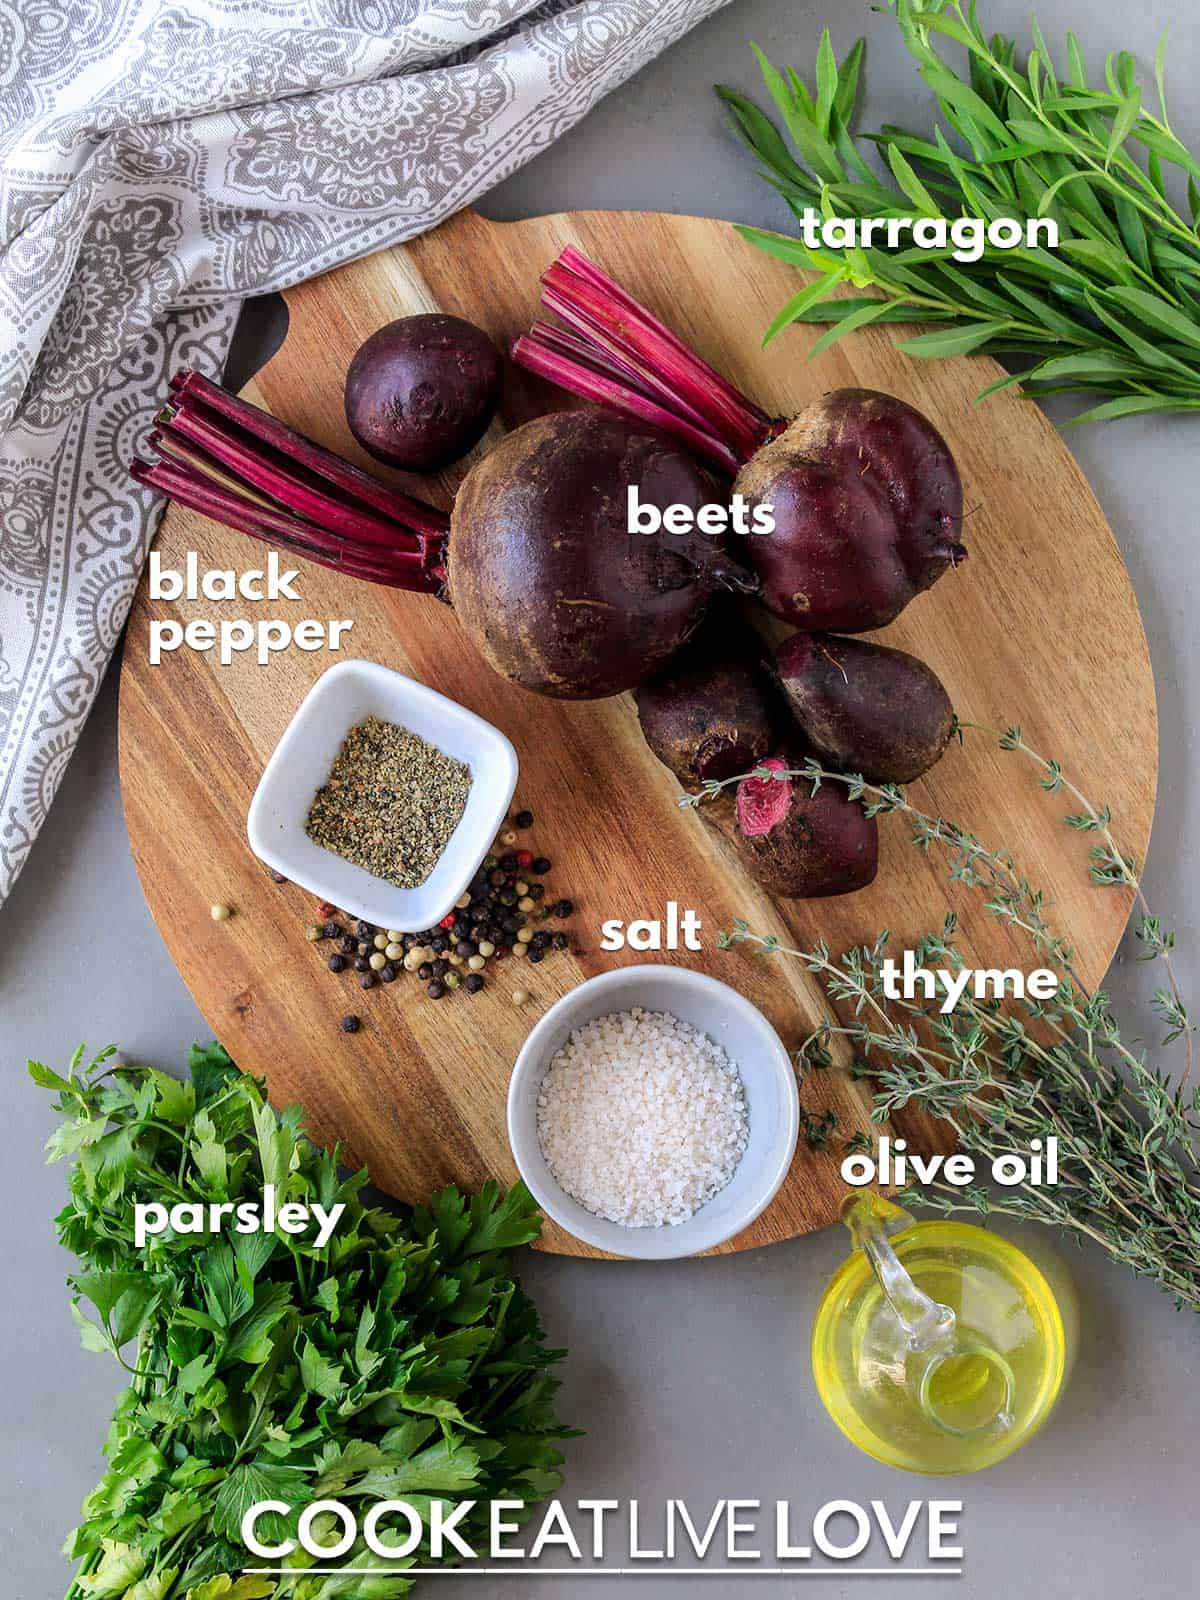 Ingredients to make roasted beets on the counter with text labels.